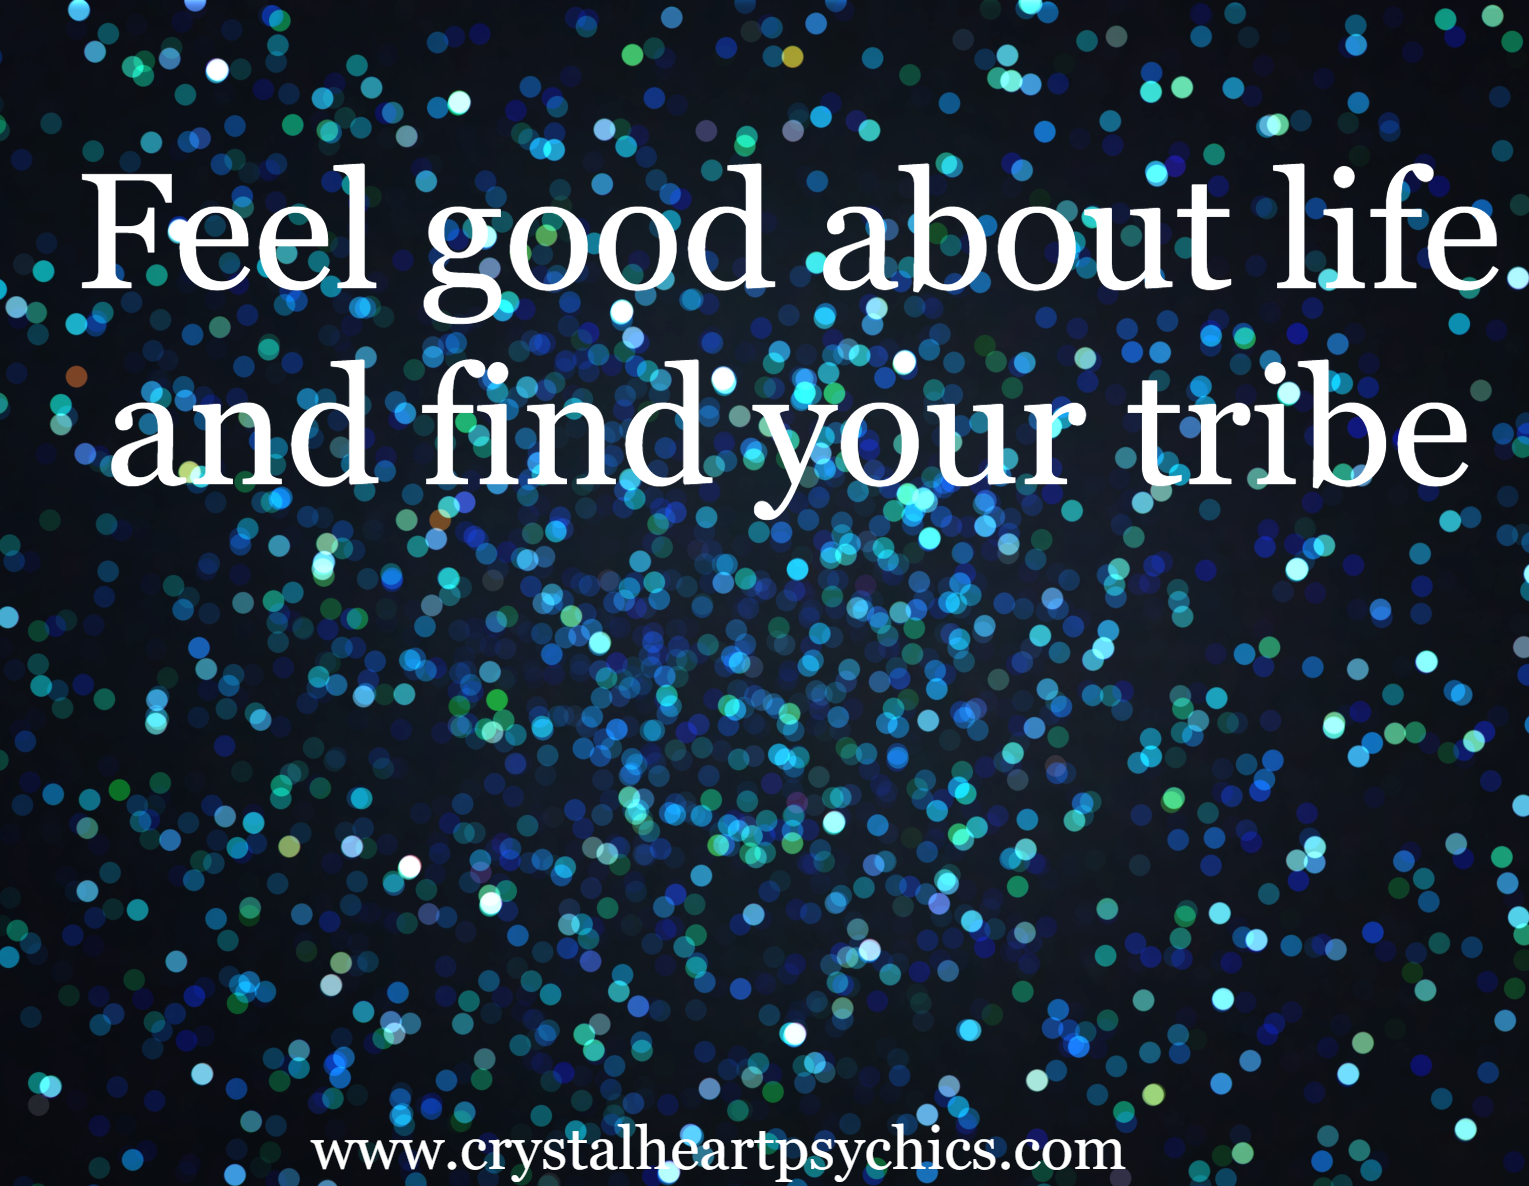 https://www.crystalheartpsychics.com/wp-content/uploads/2021/06/finding-your-tribe.png